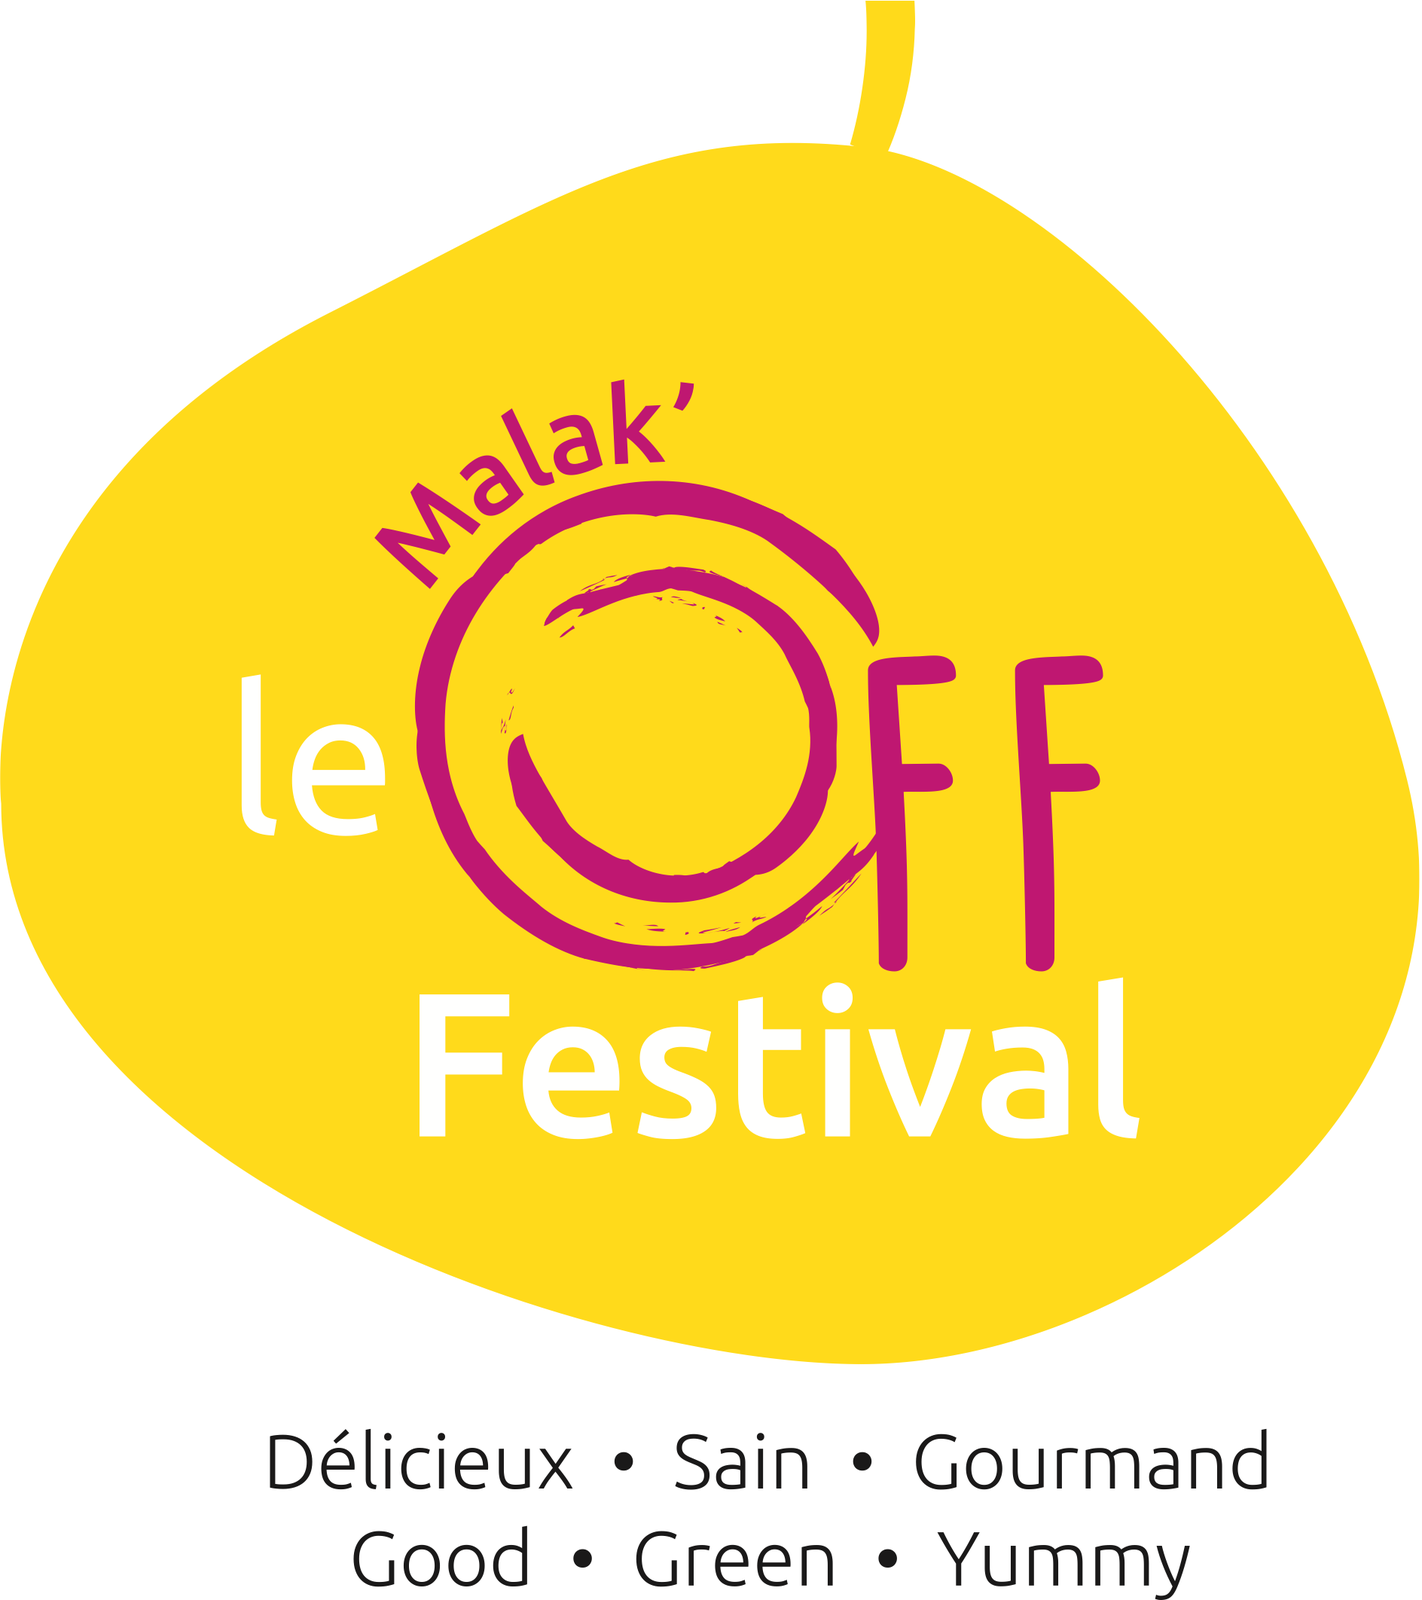 LE OFF FESTIVAL SOIREE CULINAIRE